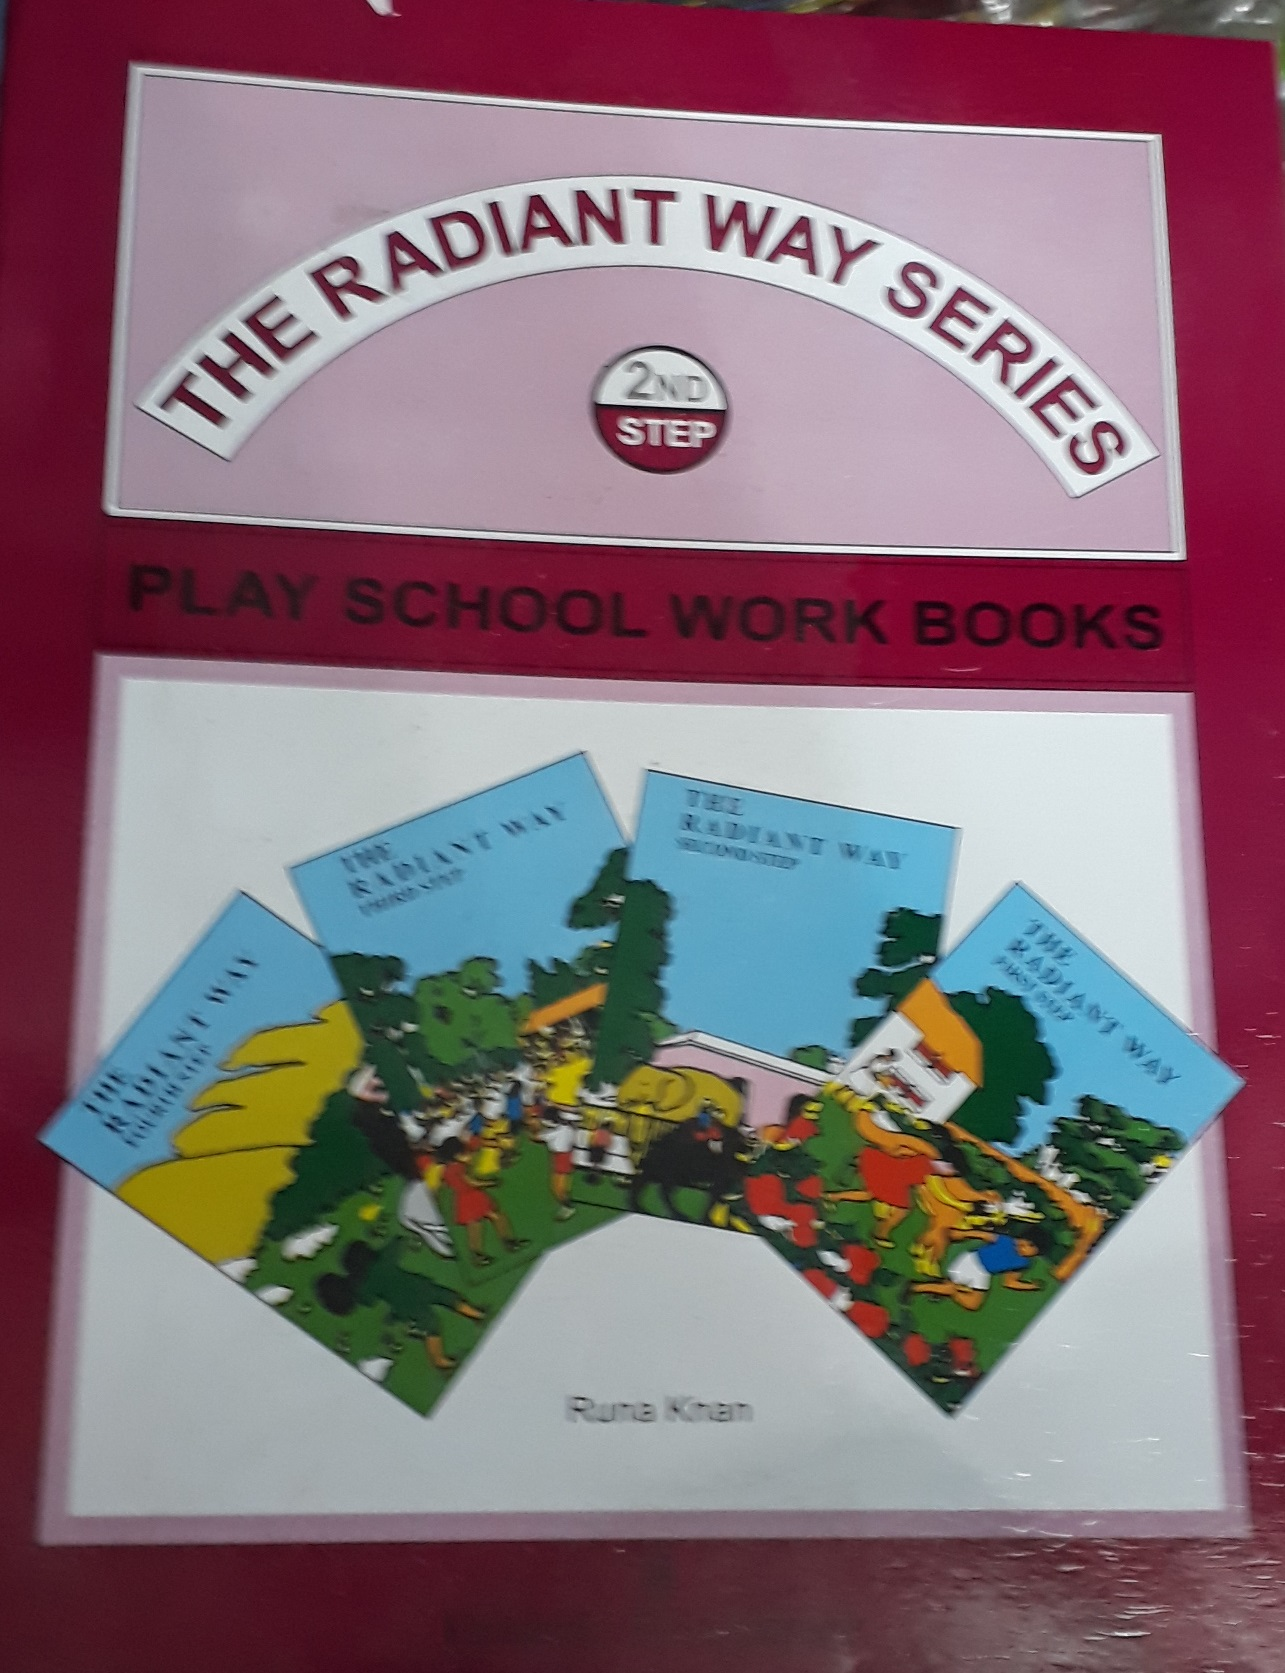 THE RADIANT WAY SECOND STEP – PLAY SCHOOL WORK BOOKS